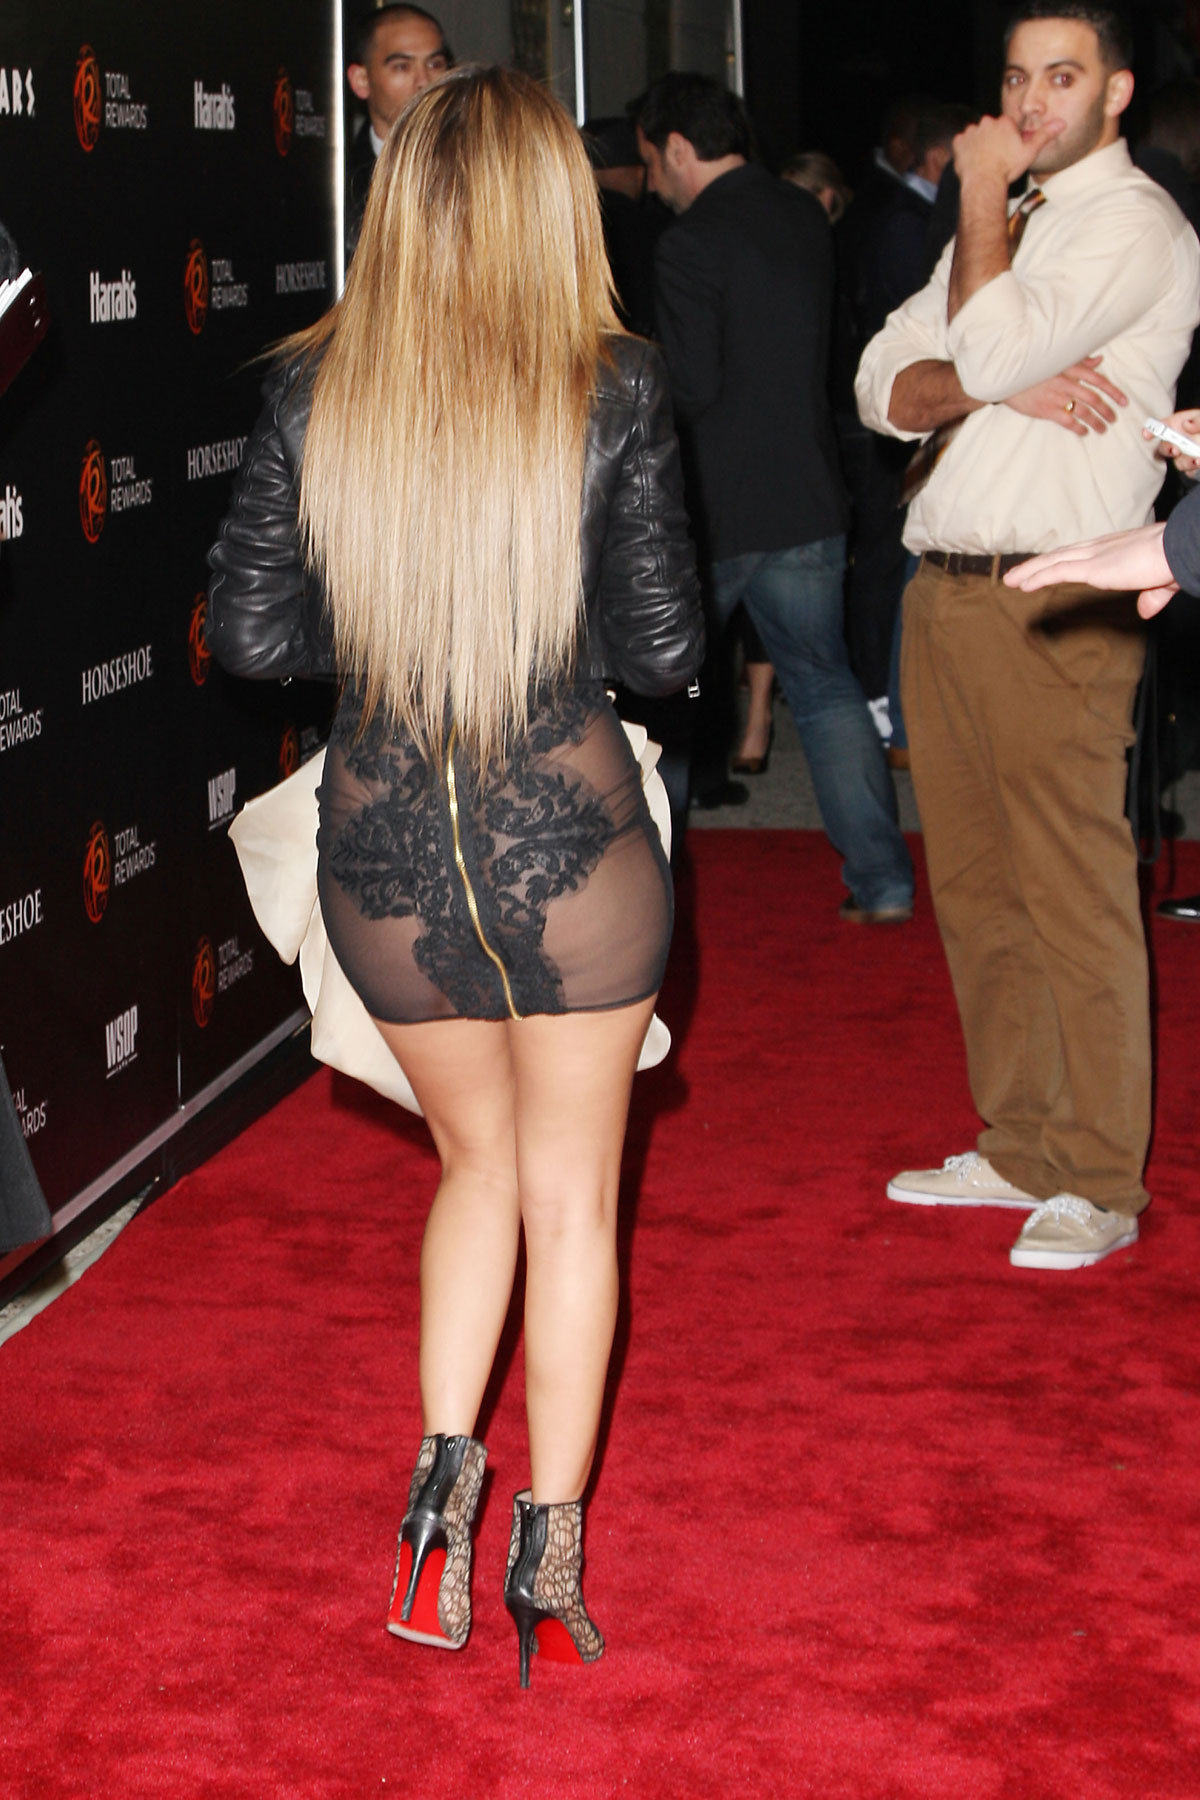 Leaked Adrienne Bailon nudes (42 photos), Pussy, Leaked, Boobs, butt 2006